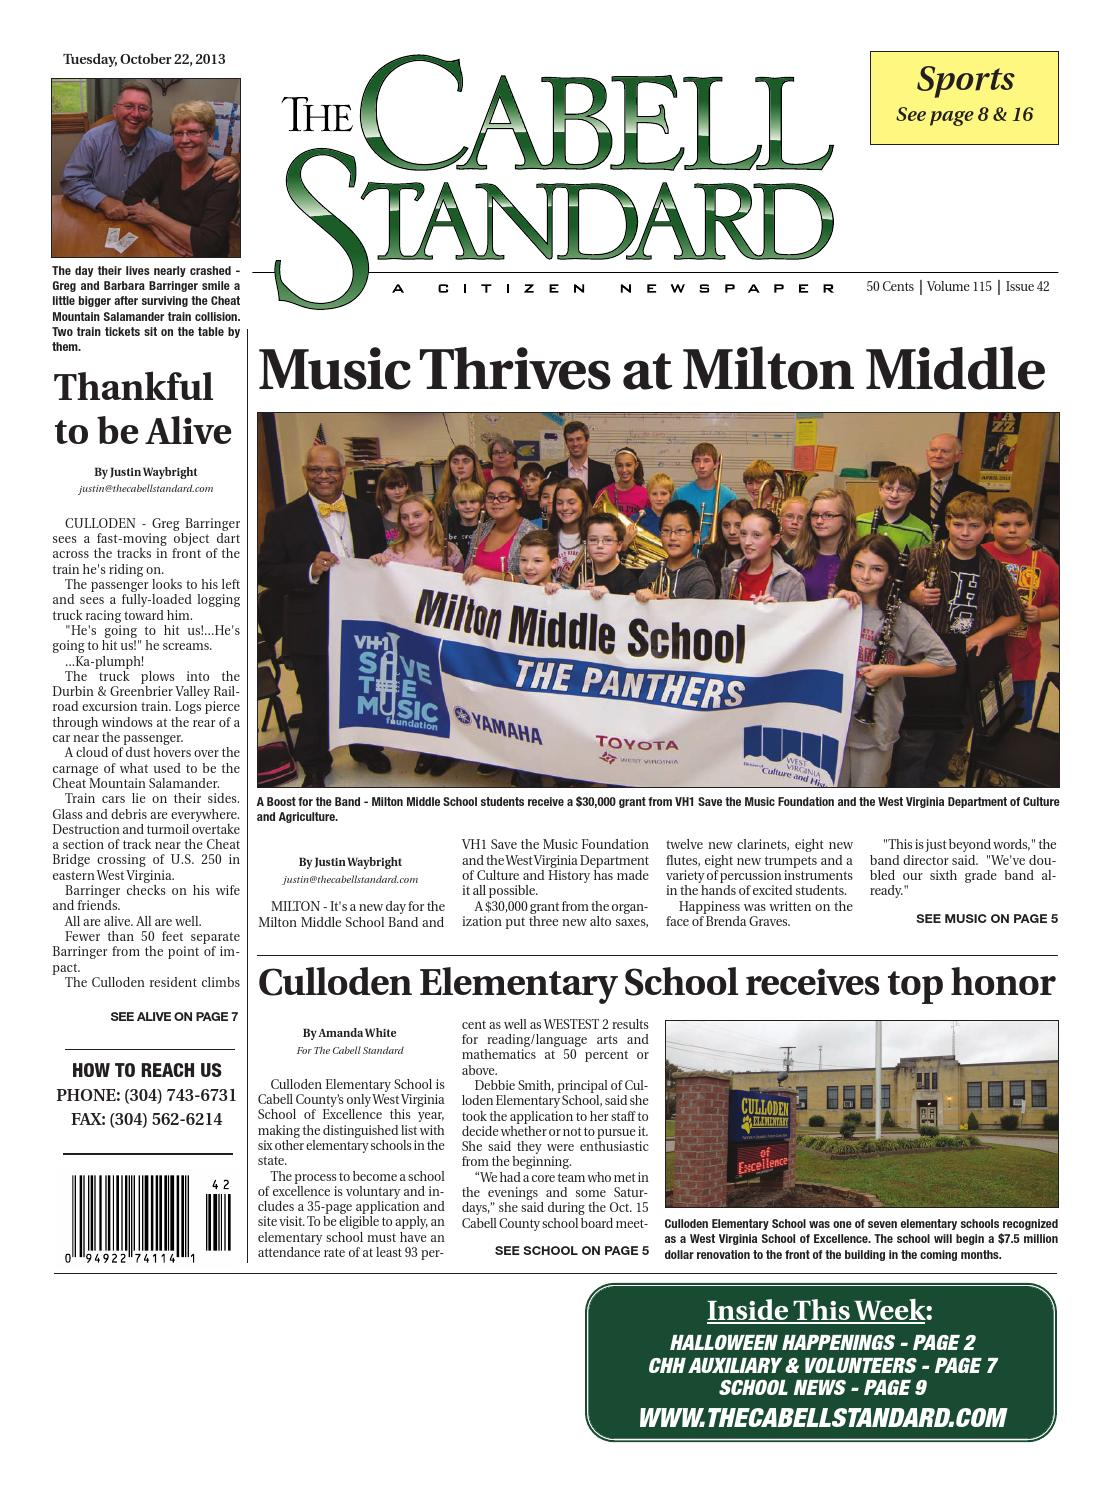 The Cabell Standard, October 22, 2013 by PC Newspapers - issuu